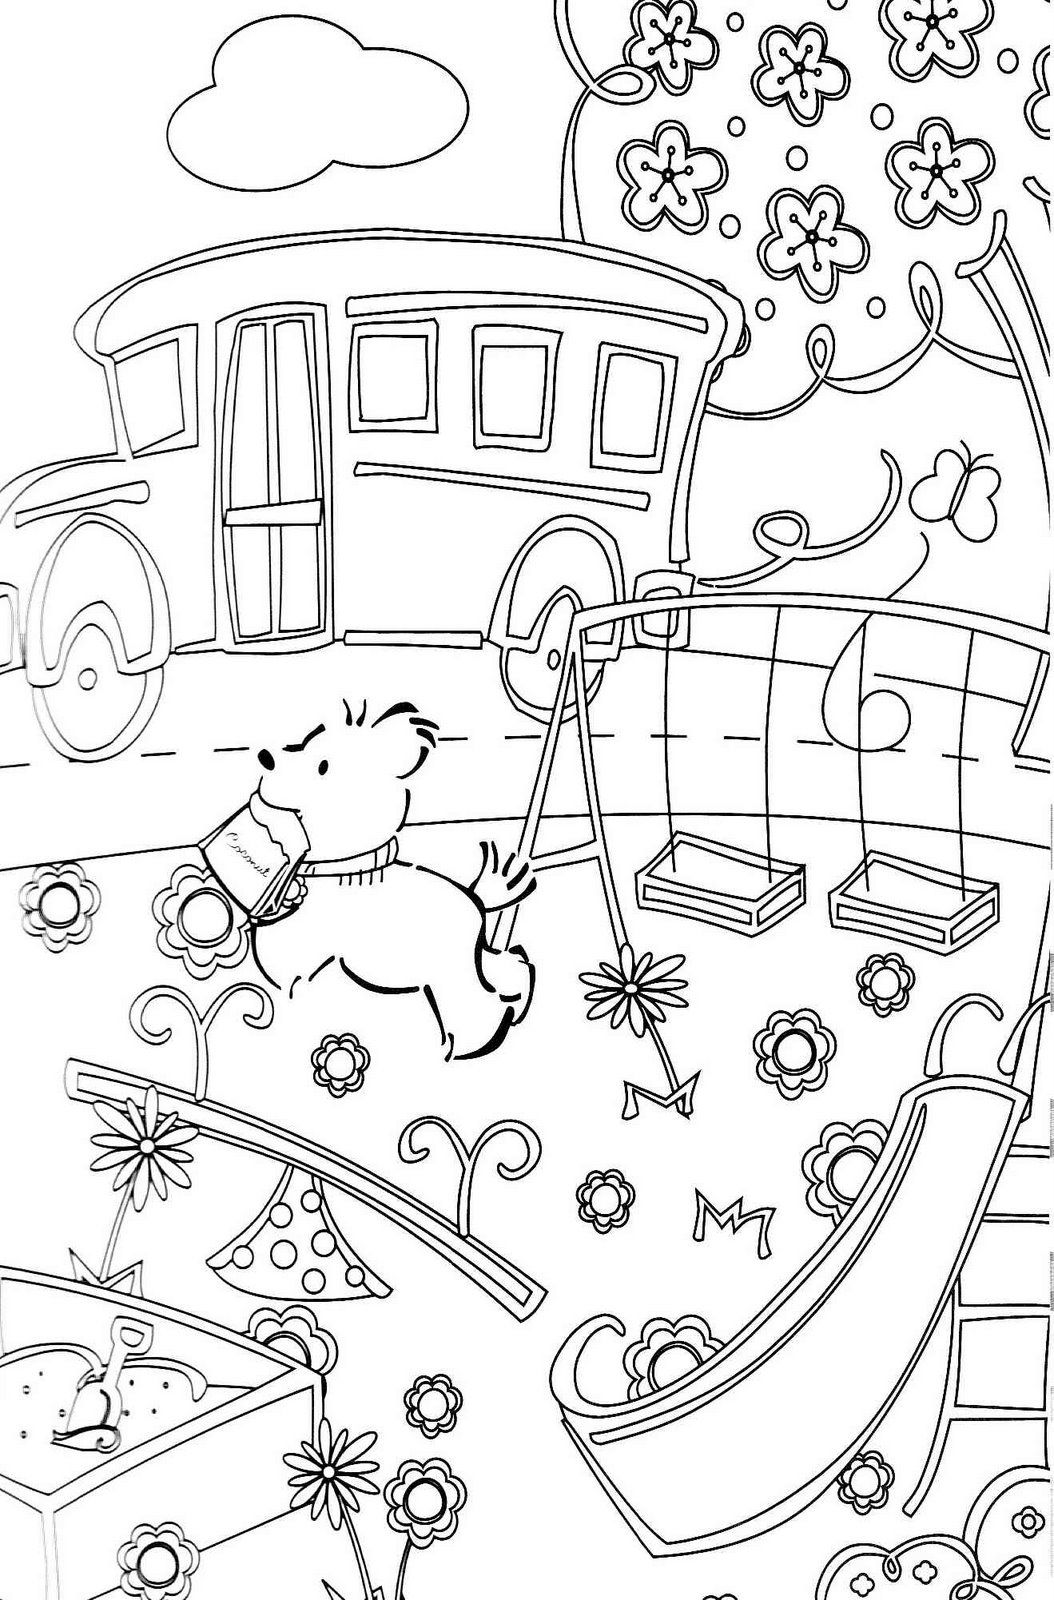 american girl printables | Download American Girl Coloring Pages at ...